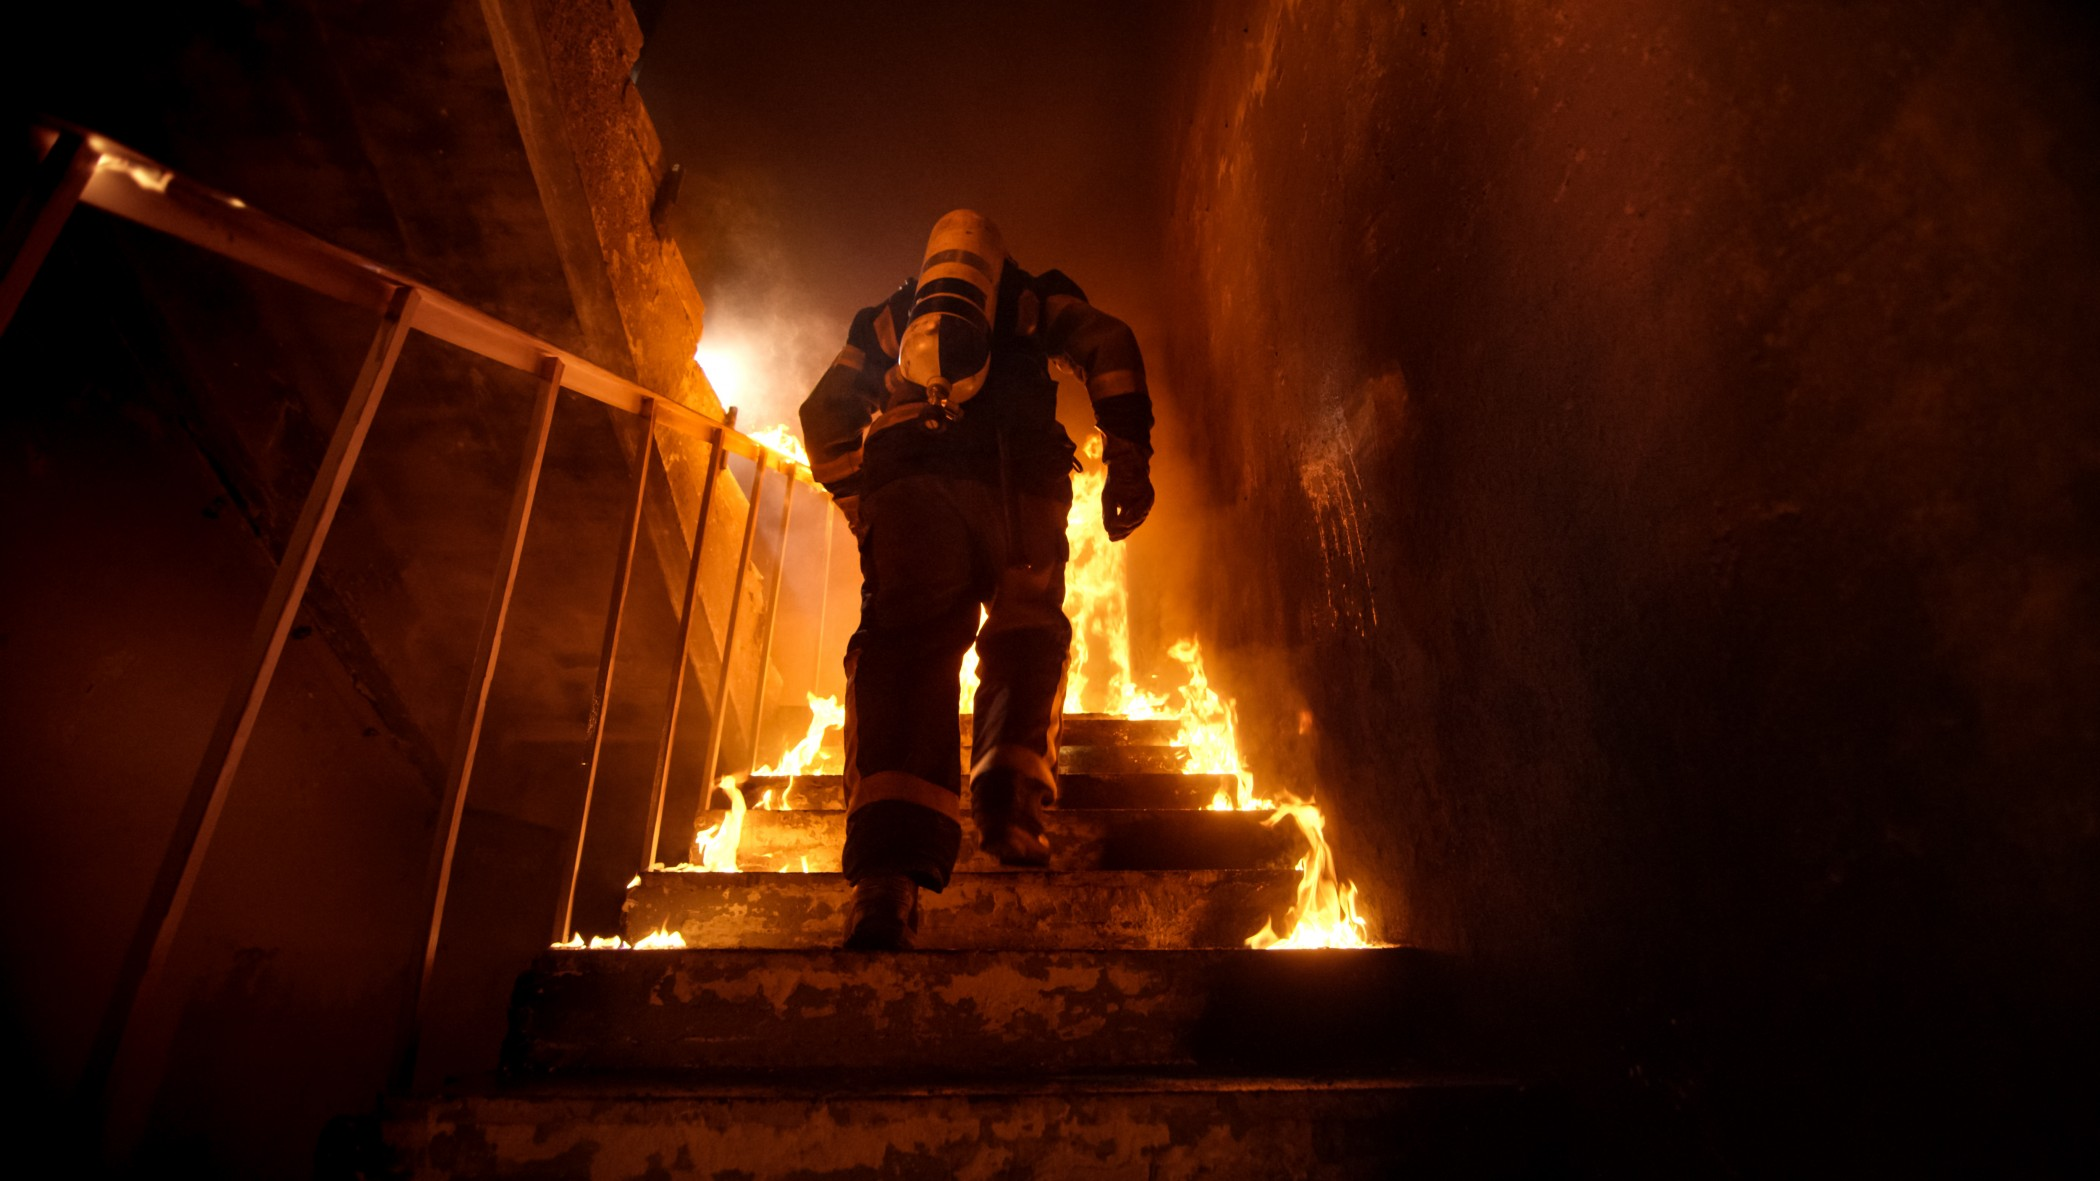 Strong and brave Firefighter Going Up The Stairs in Burning Building. Stairs Burn With Open Flames.